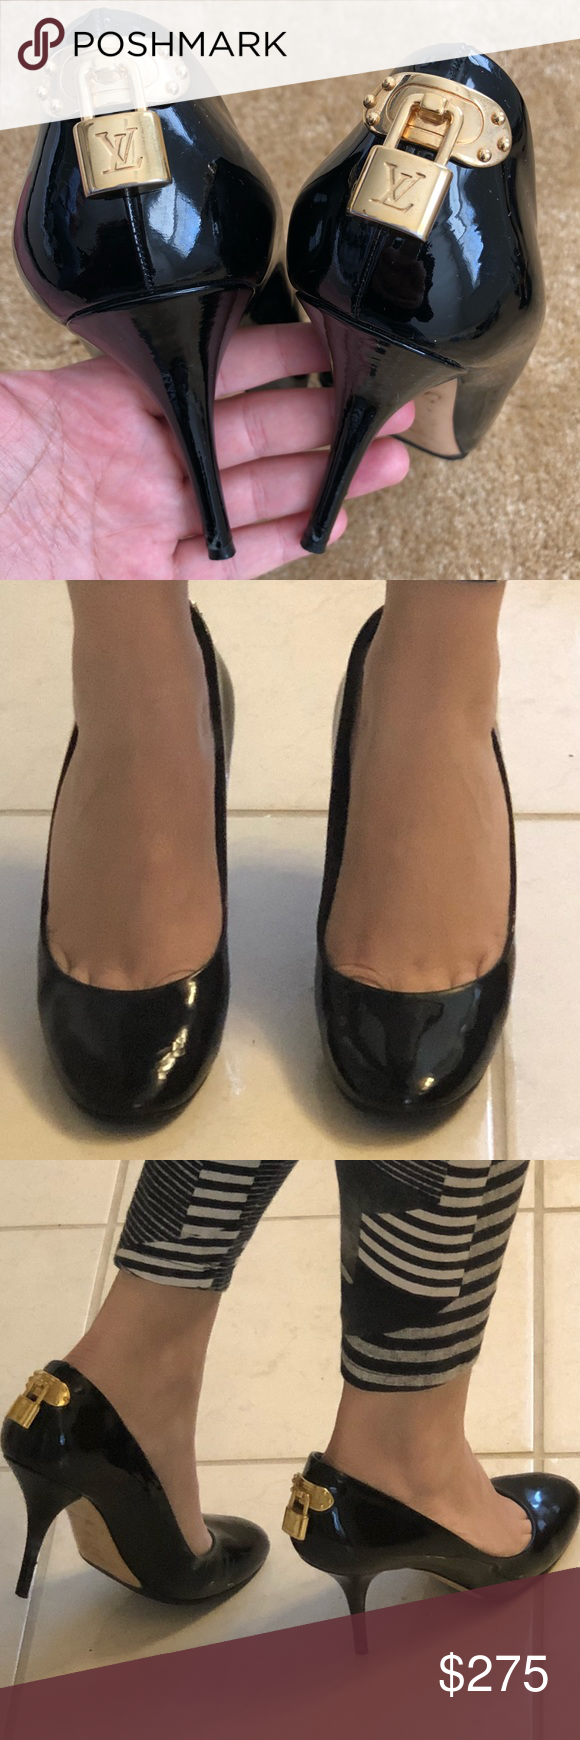 789c29ce8de4 Louis Vuitton Pumps ·  atozcovered Lives in the DMV area! Spotted while  shopping on Poshmark  WILLING TO